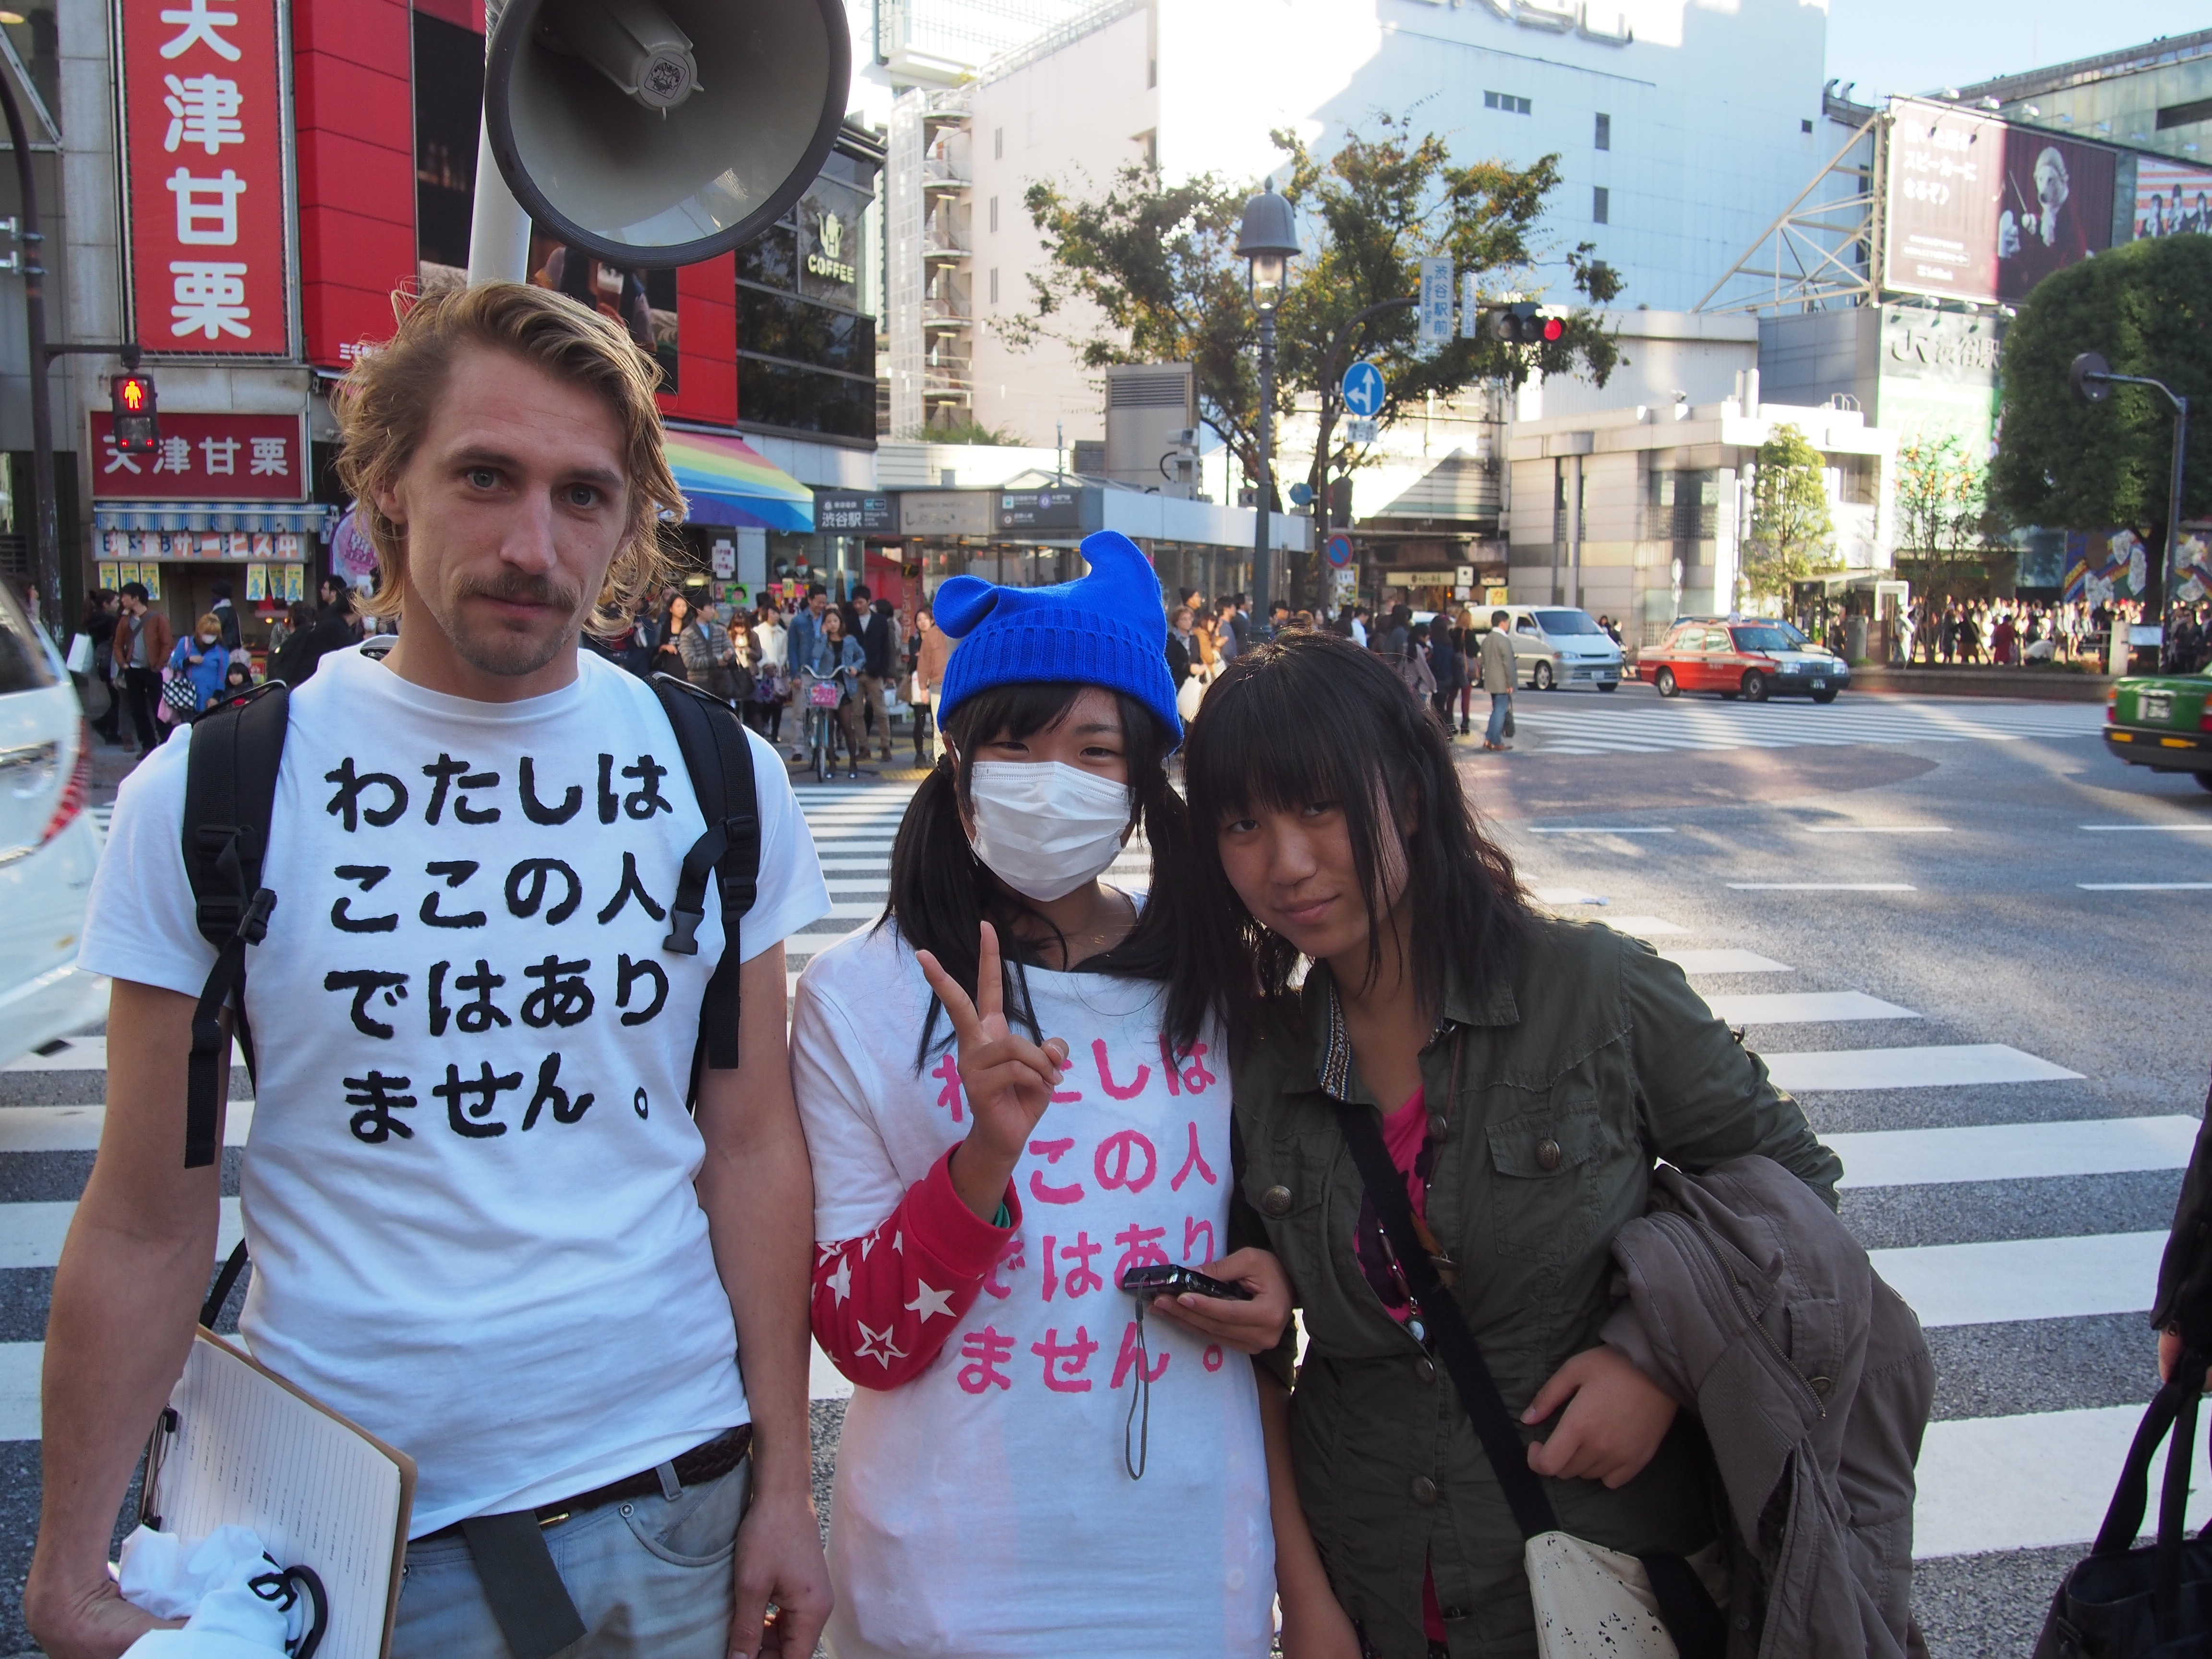 A Japanese lady was my spokesperson. From the megaphone strapped to my back here voice called: 'I am not from here, wear my T-shirts!' ある日本人女性が僕の広報係をつとめてくれた。私が背中に背負ったメガホンからは「わたしはここの人ではありません。私のTシャツを買ってください」という言葉が流れている。